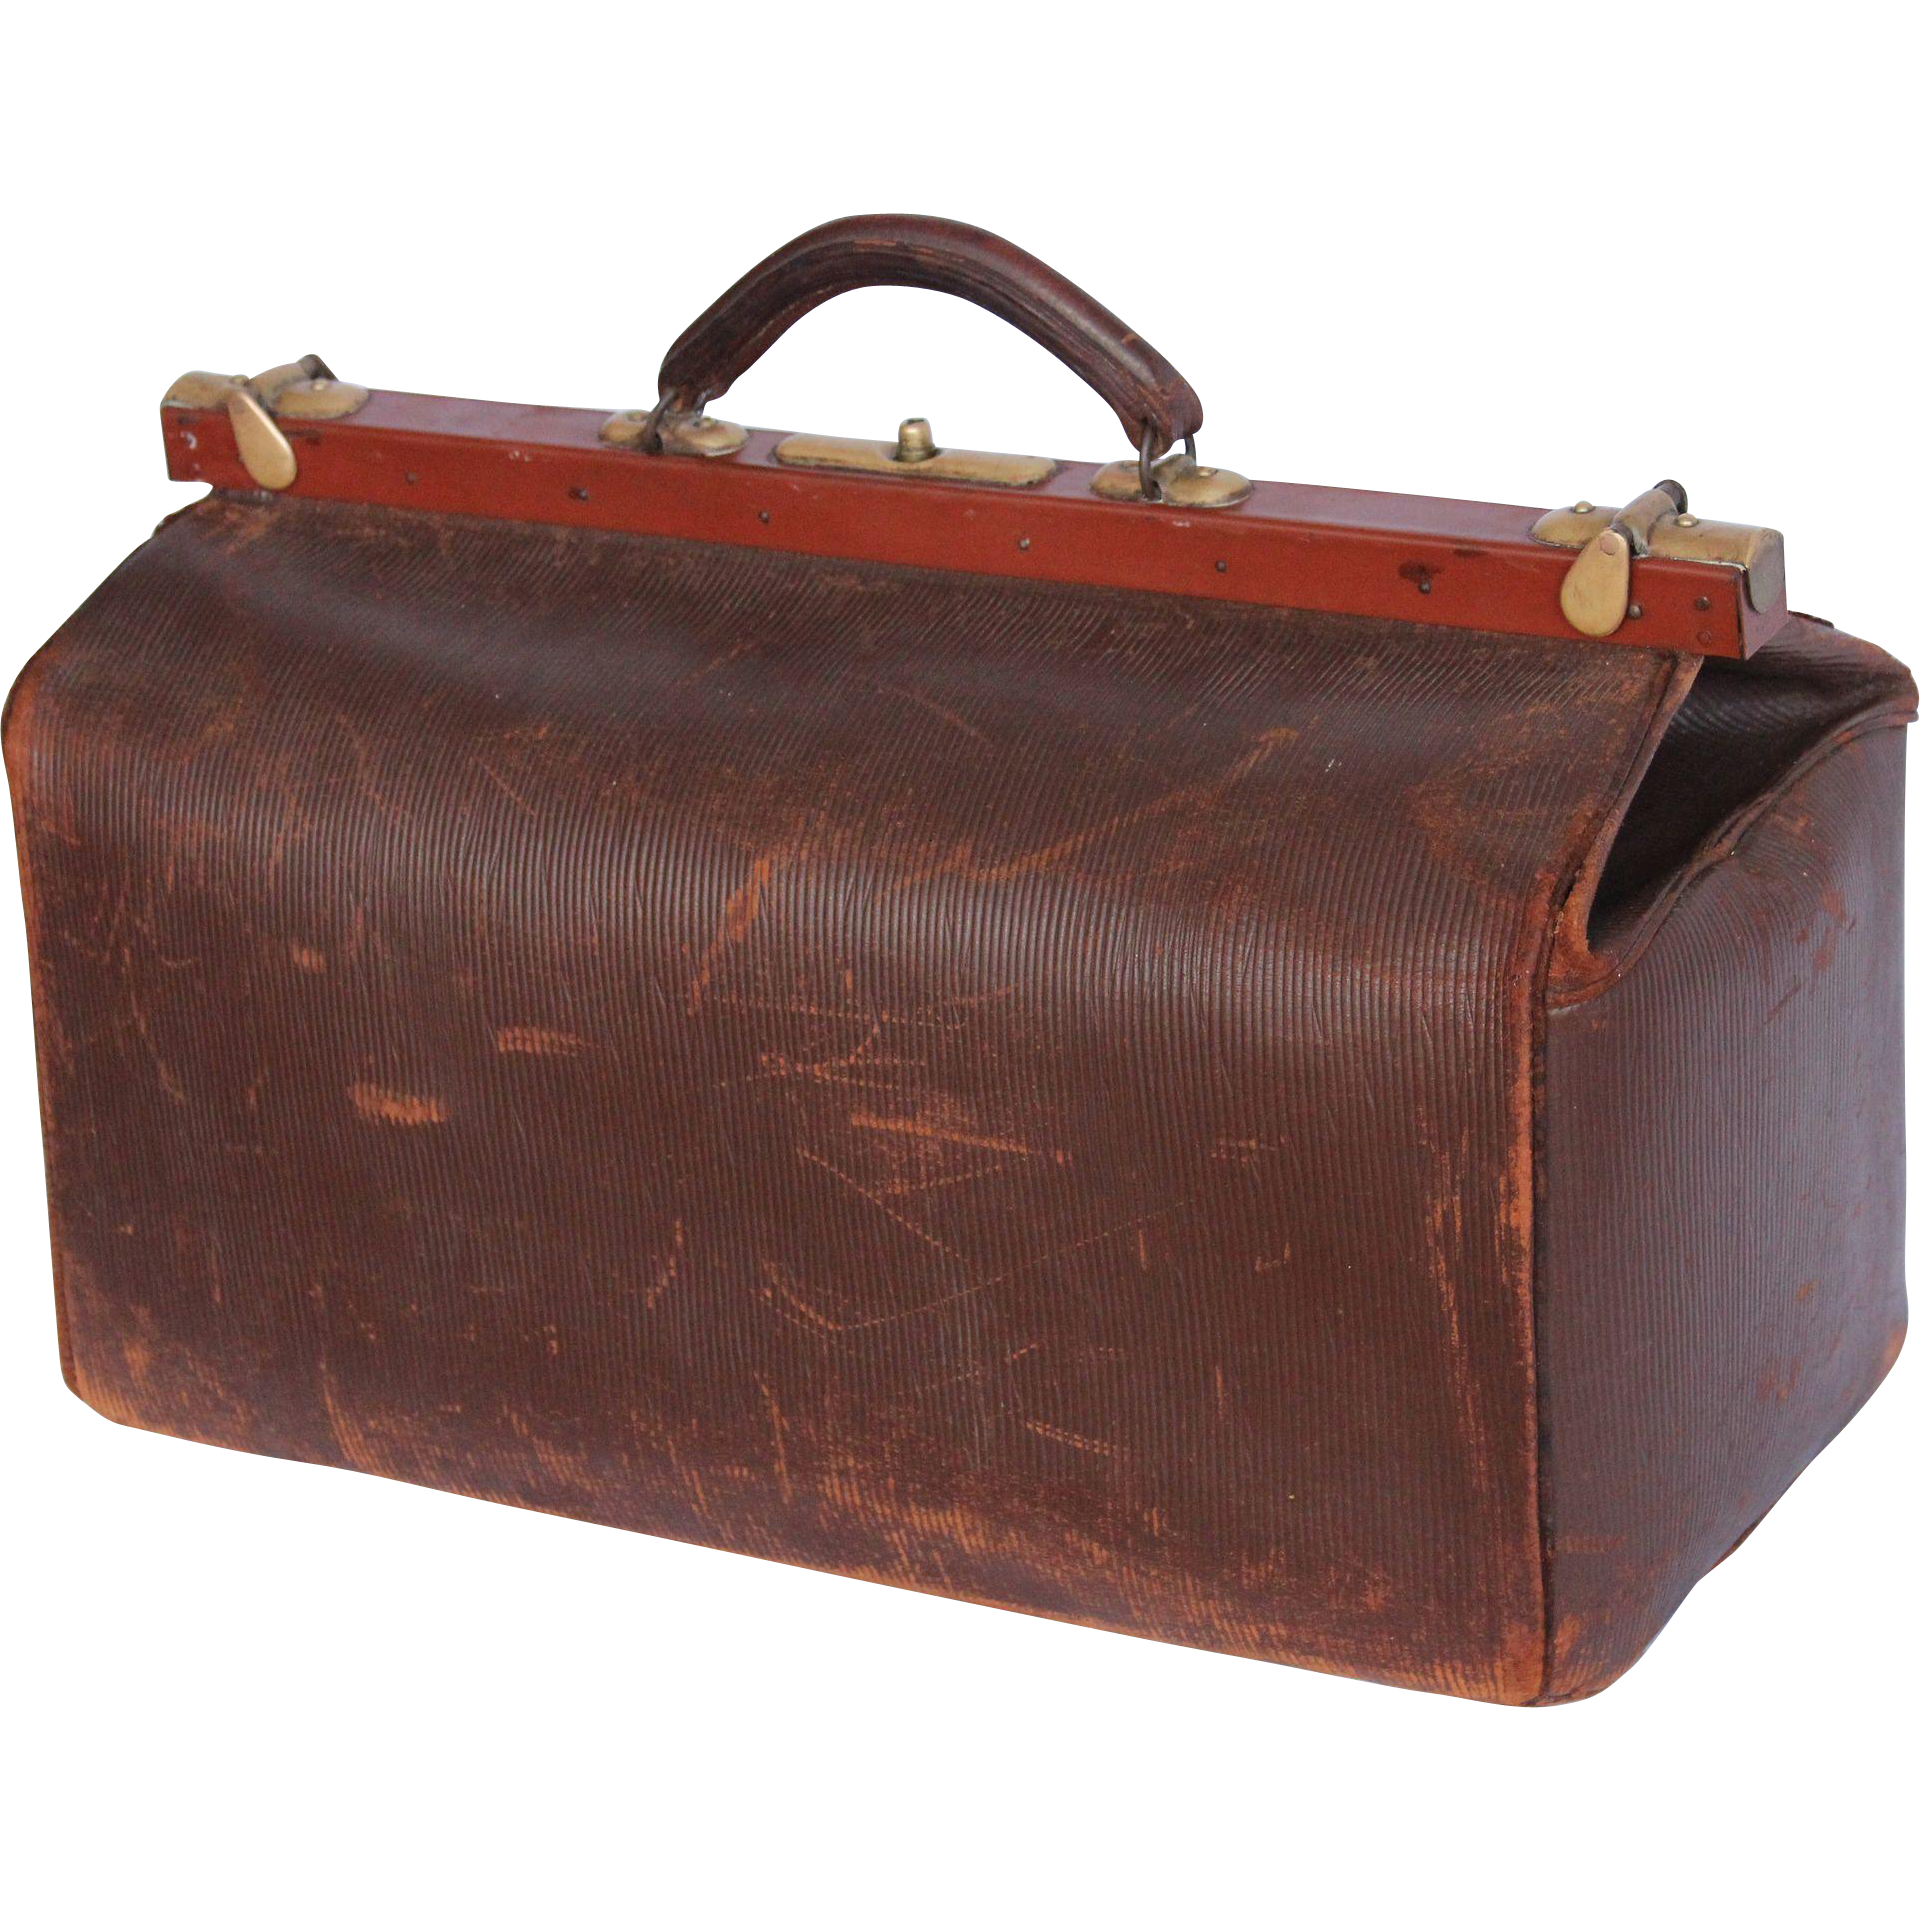 Old fashioned medical bag. Doctors clipart briefcase